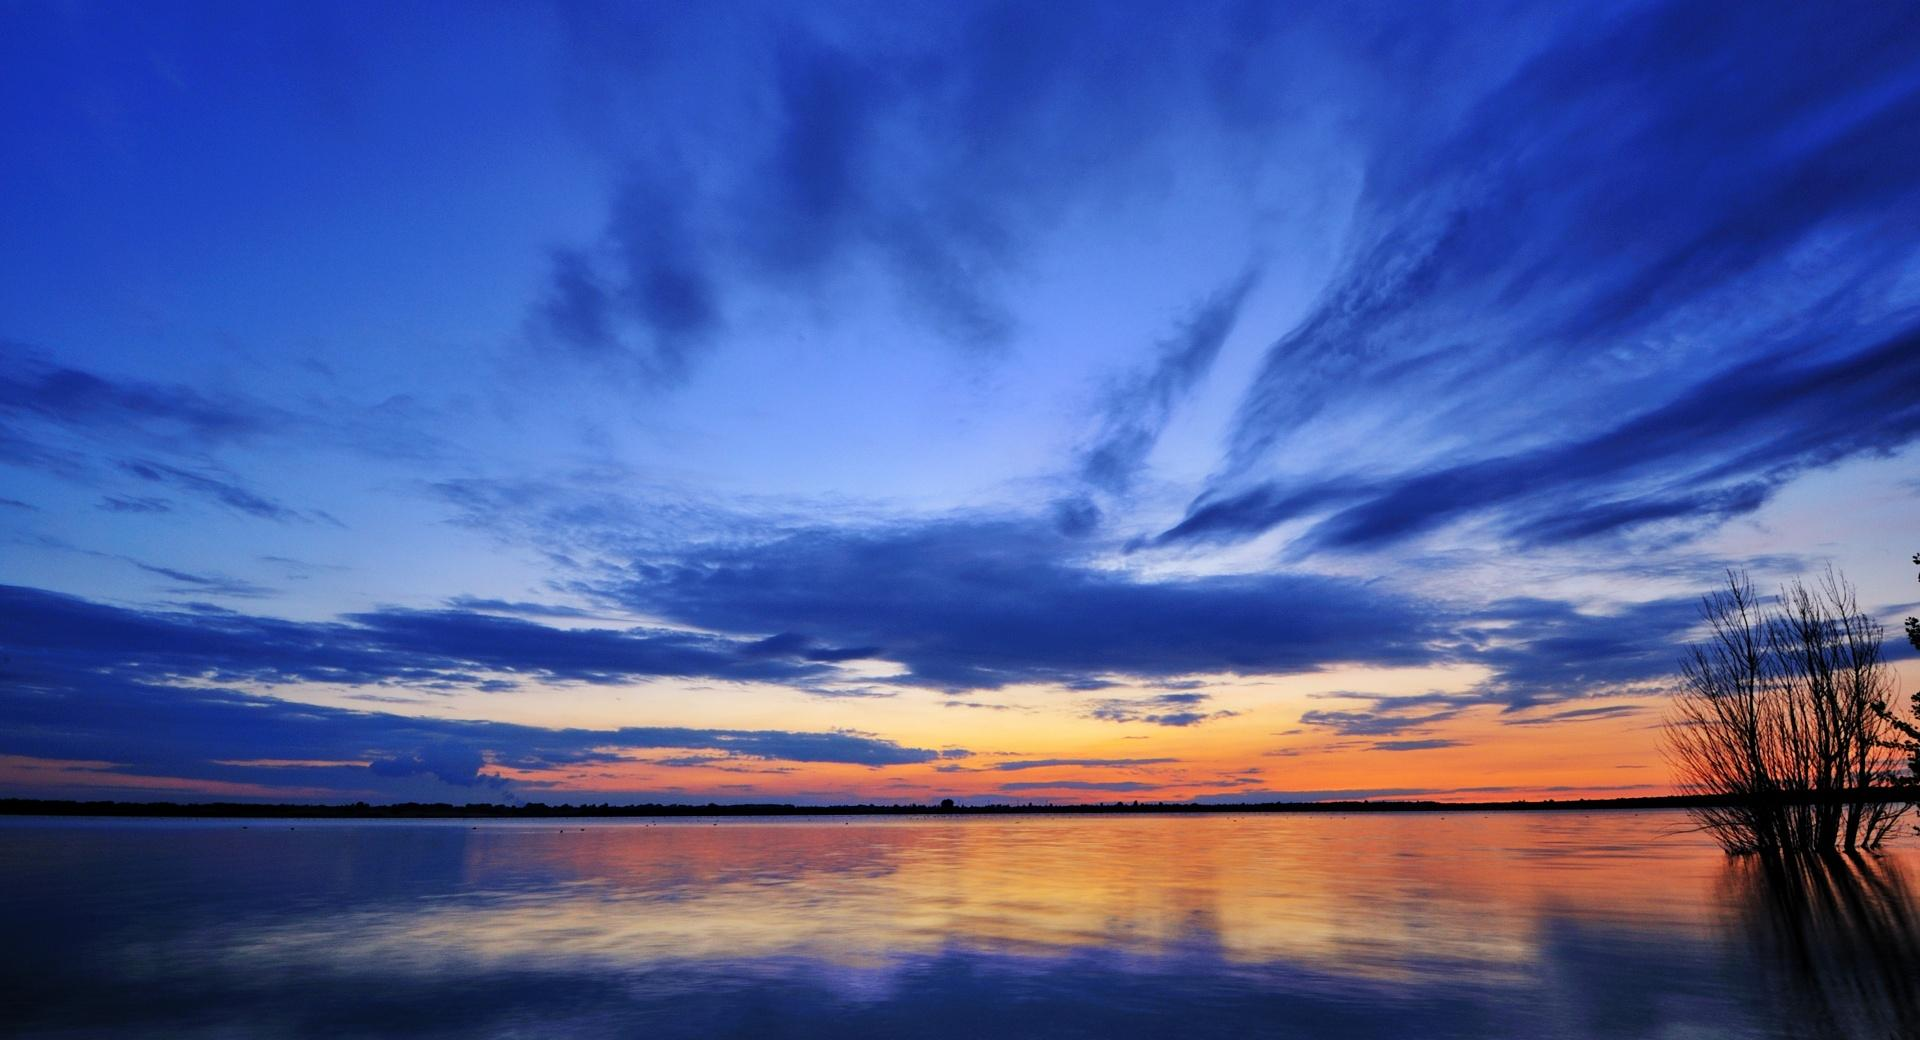 Mirroring The Clouds wallpapers HD quality